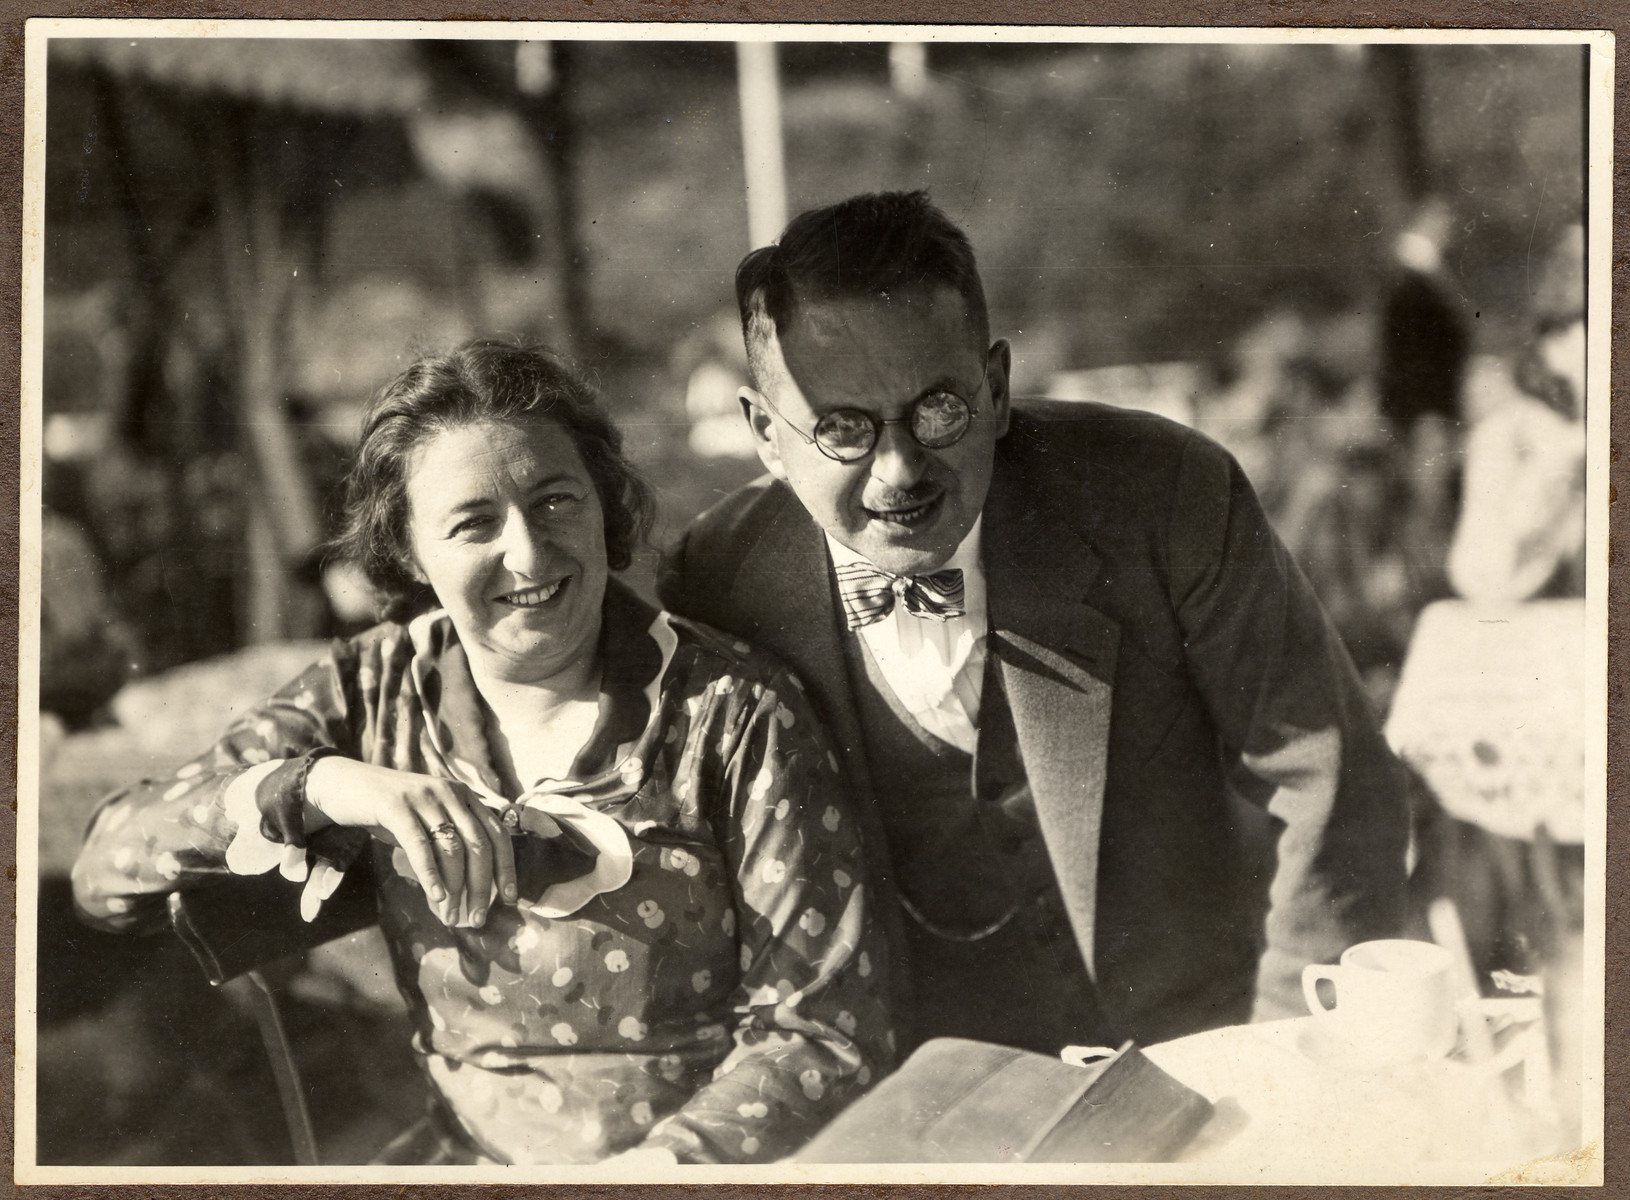 A German Jewish couple poses in an outdoor cafe.  Pictured are Dr. Hans Adolf and Augusta Bujakowksi.